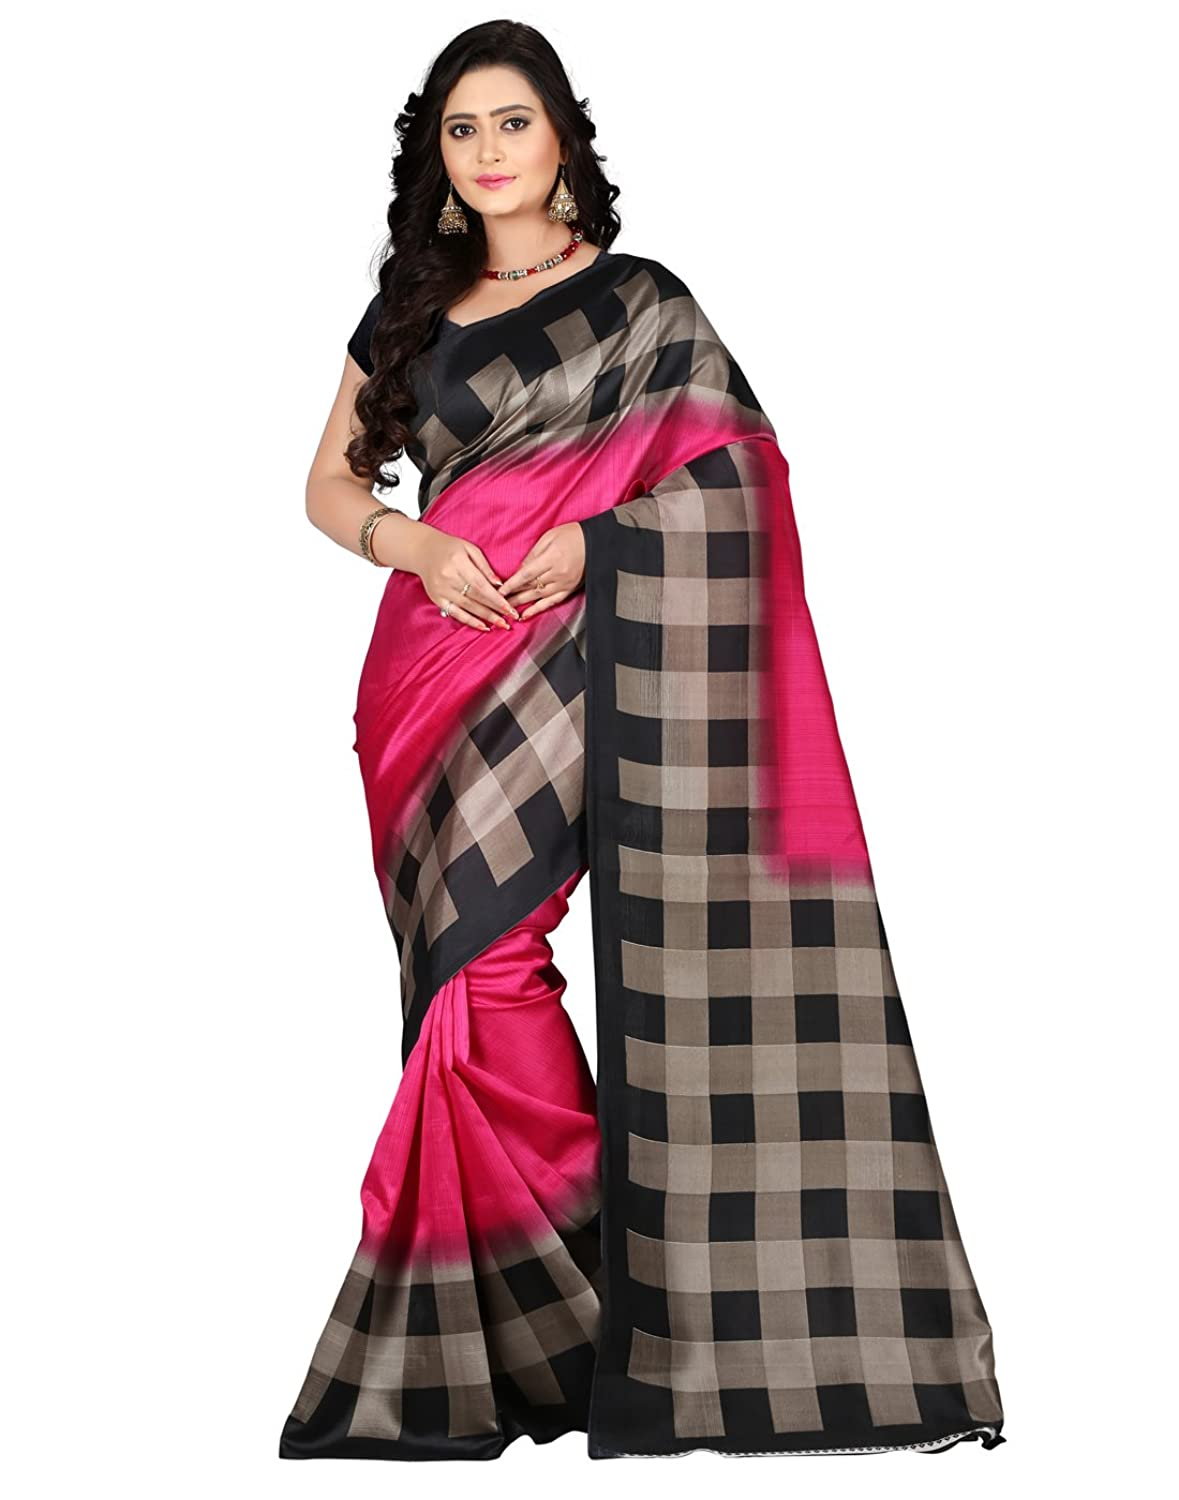 74a8b42740d Top 10 Collection of Sarees under 500 Rupees - Best Collection of Sarees